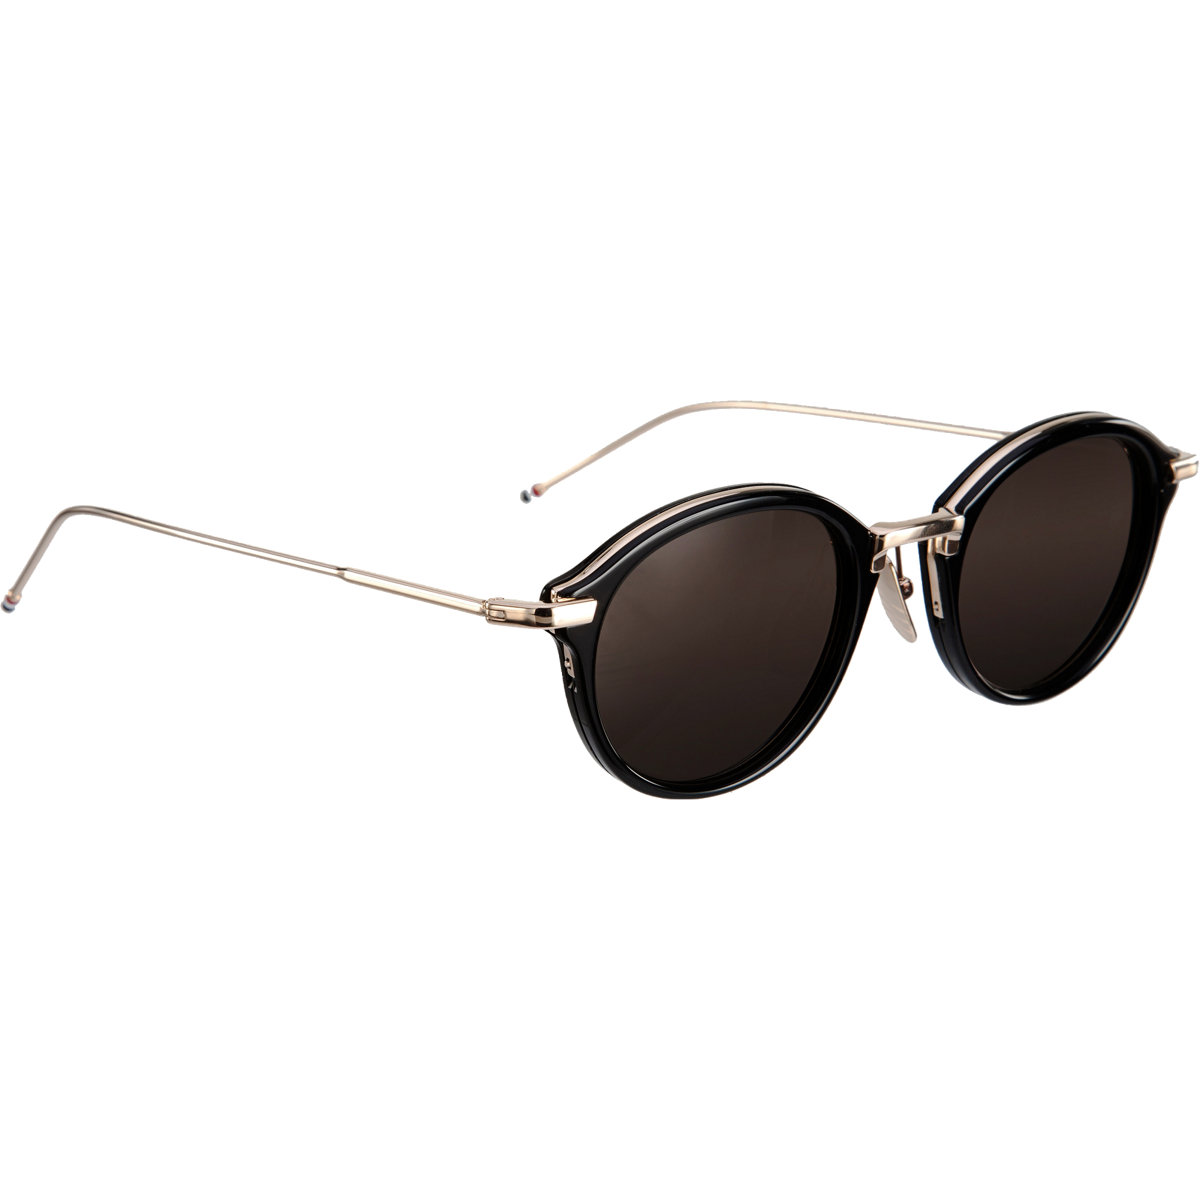 9e0c1d7c68 Thom Browne Round 46 Sunglasses in Black for Men - Lyst